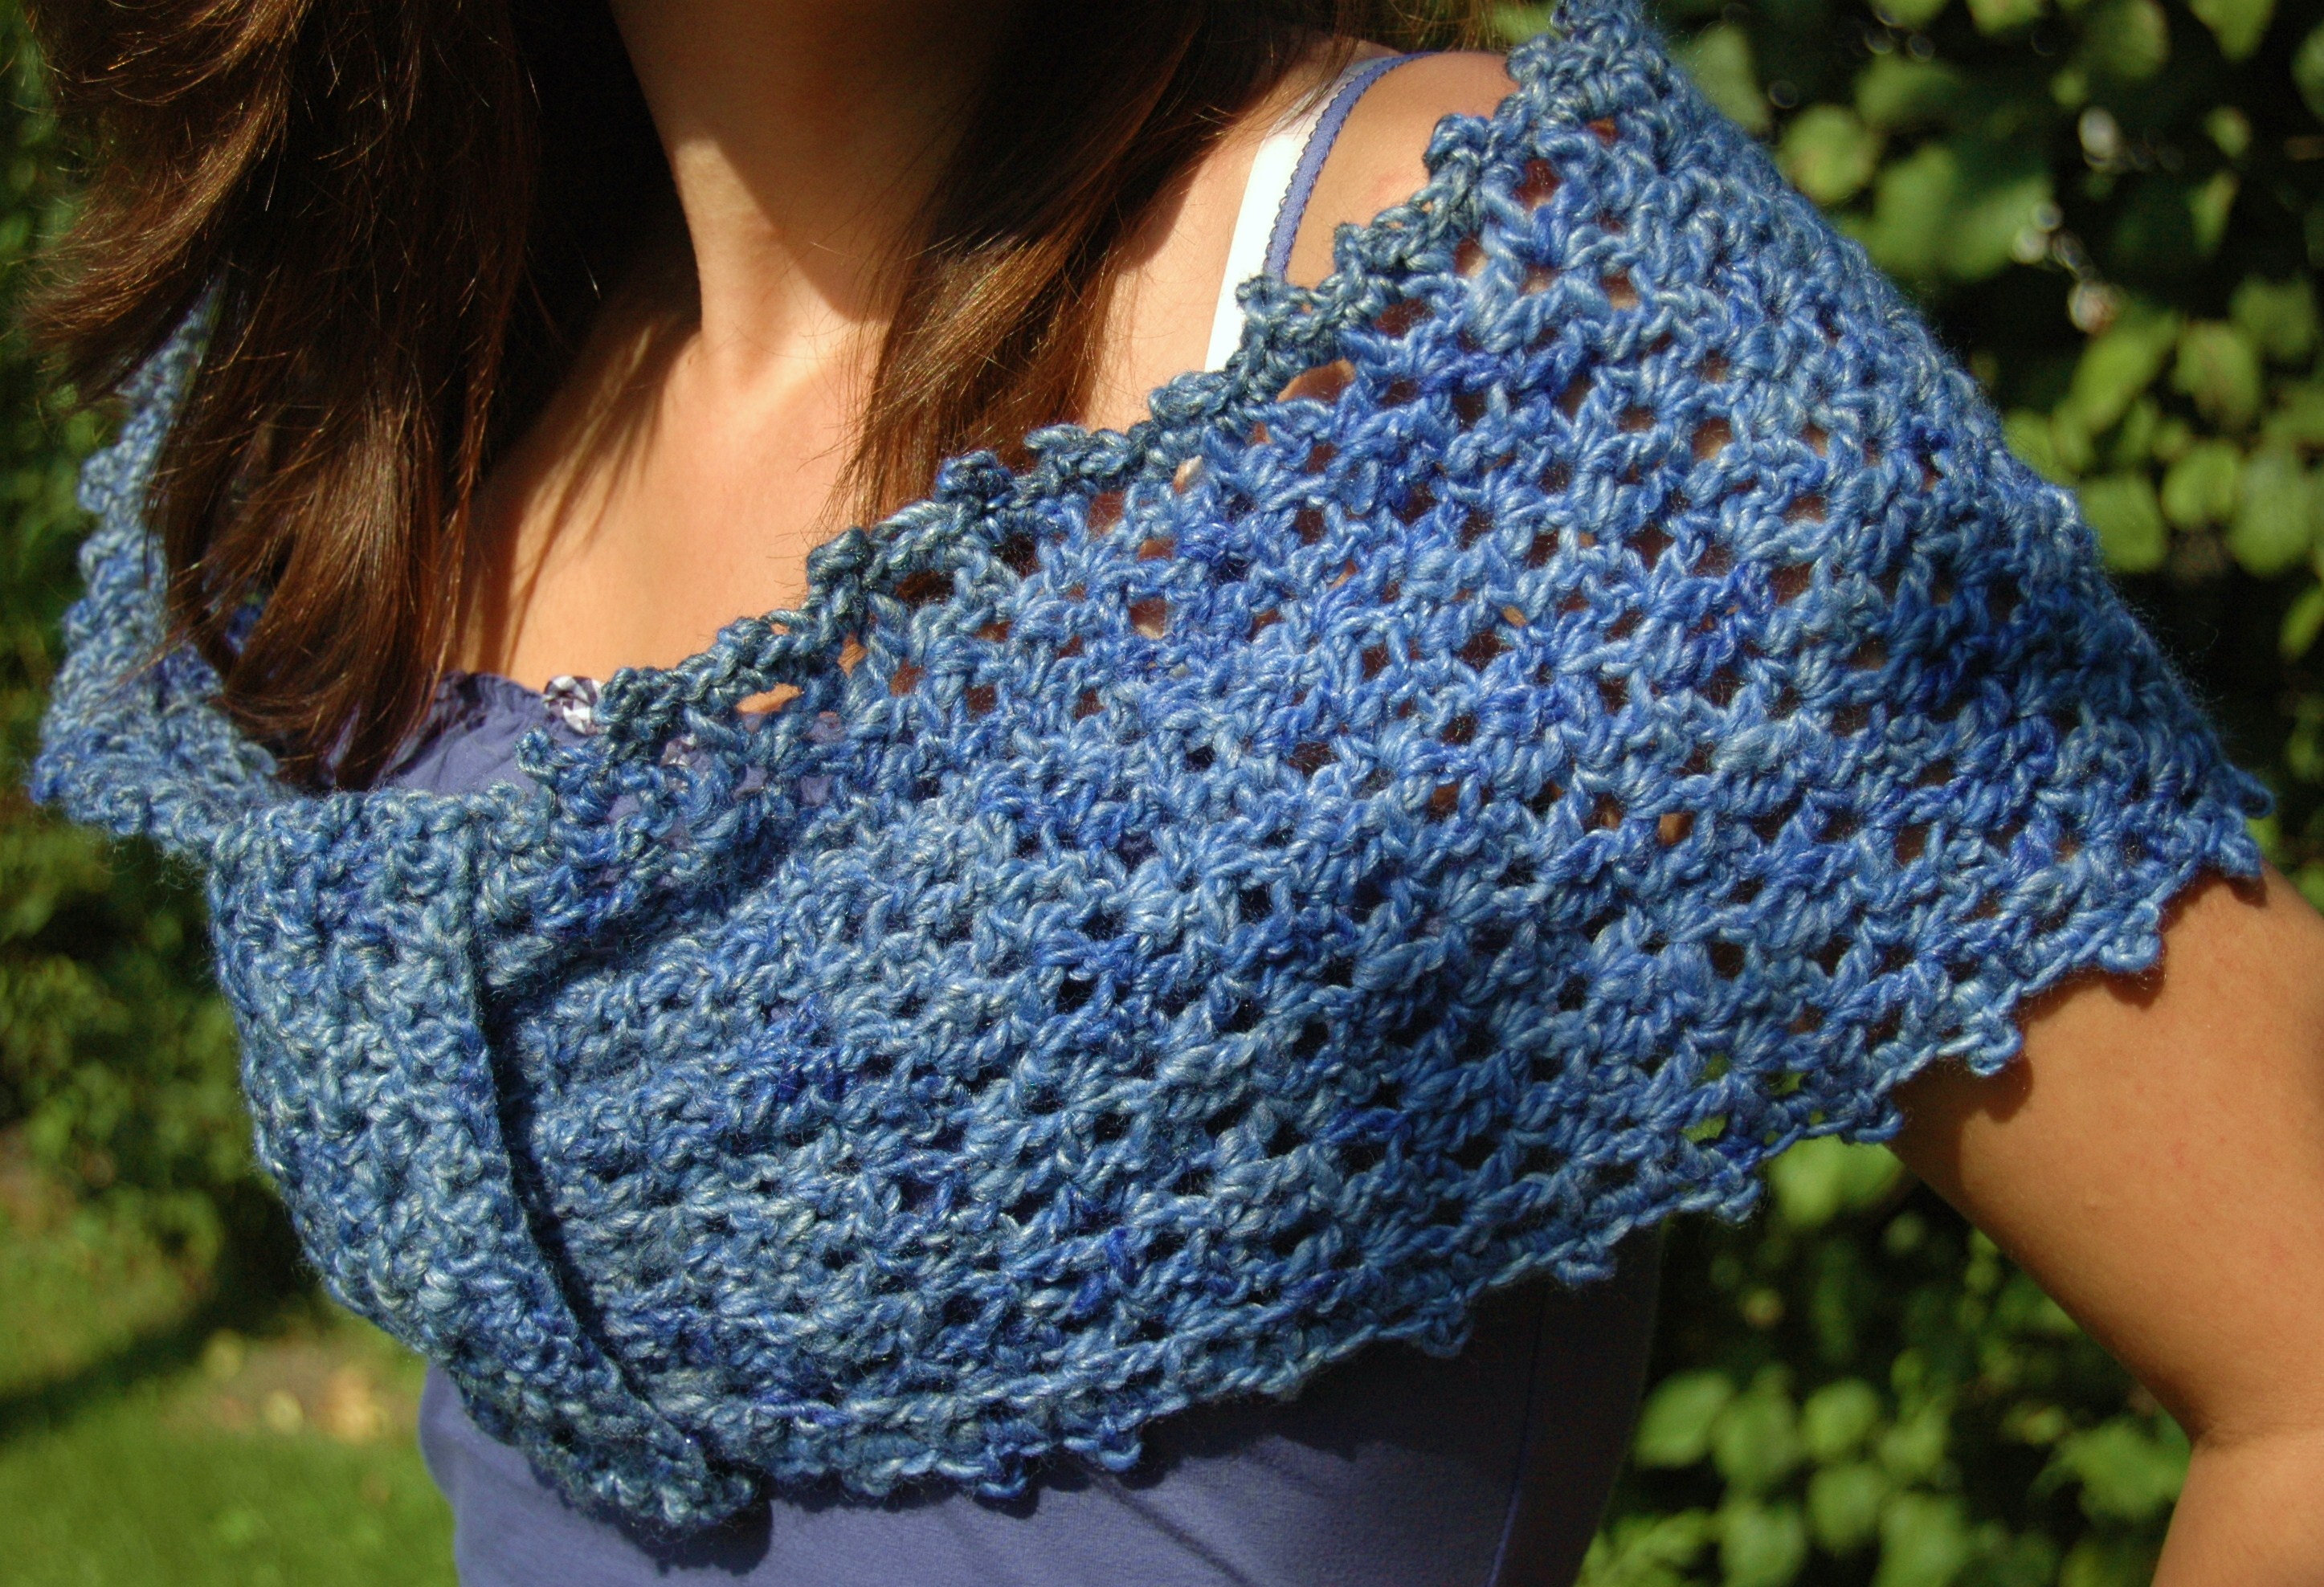 With A Tangled Skein: Crochet Wrap pattern